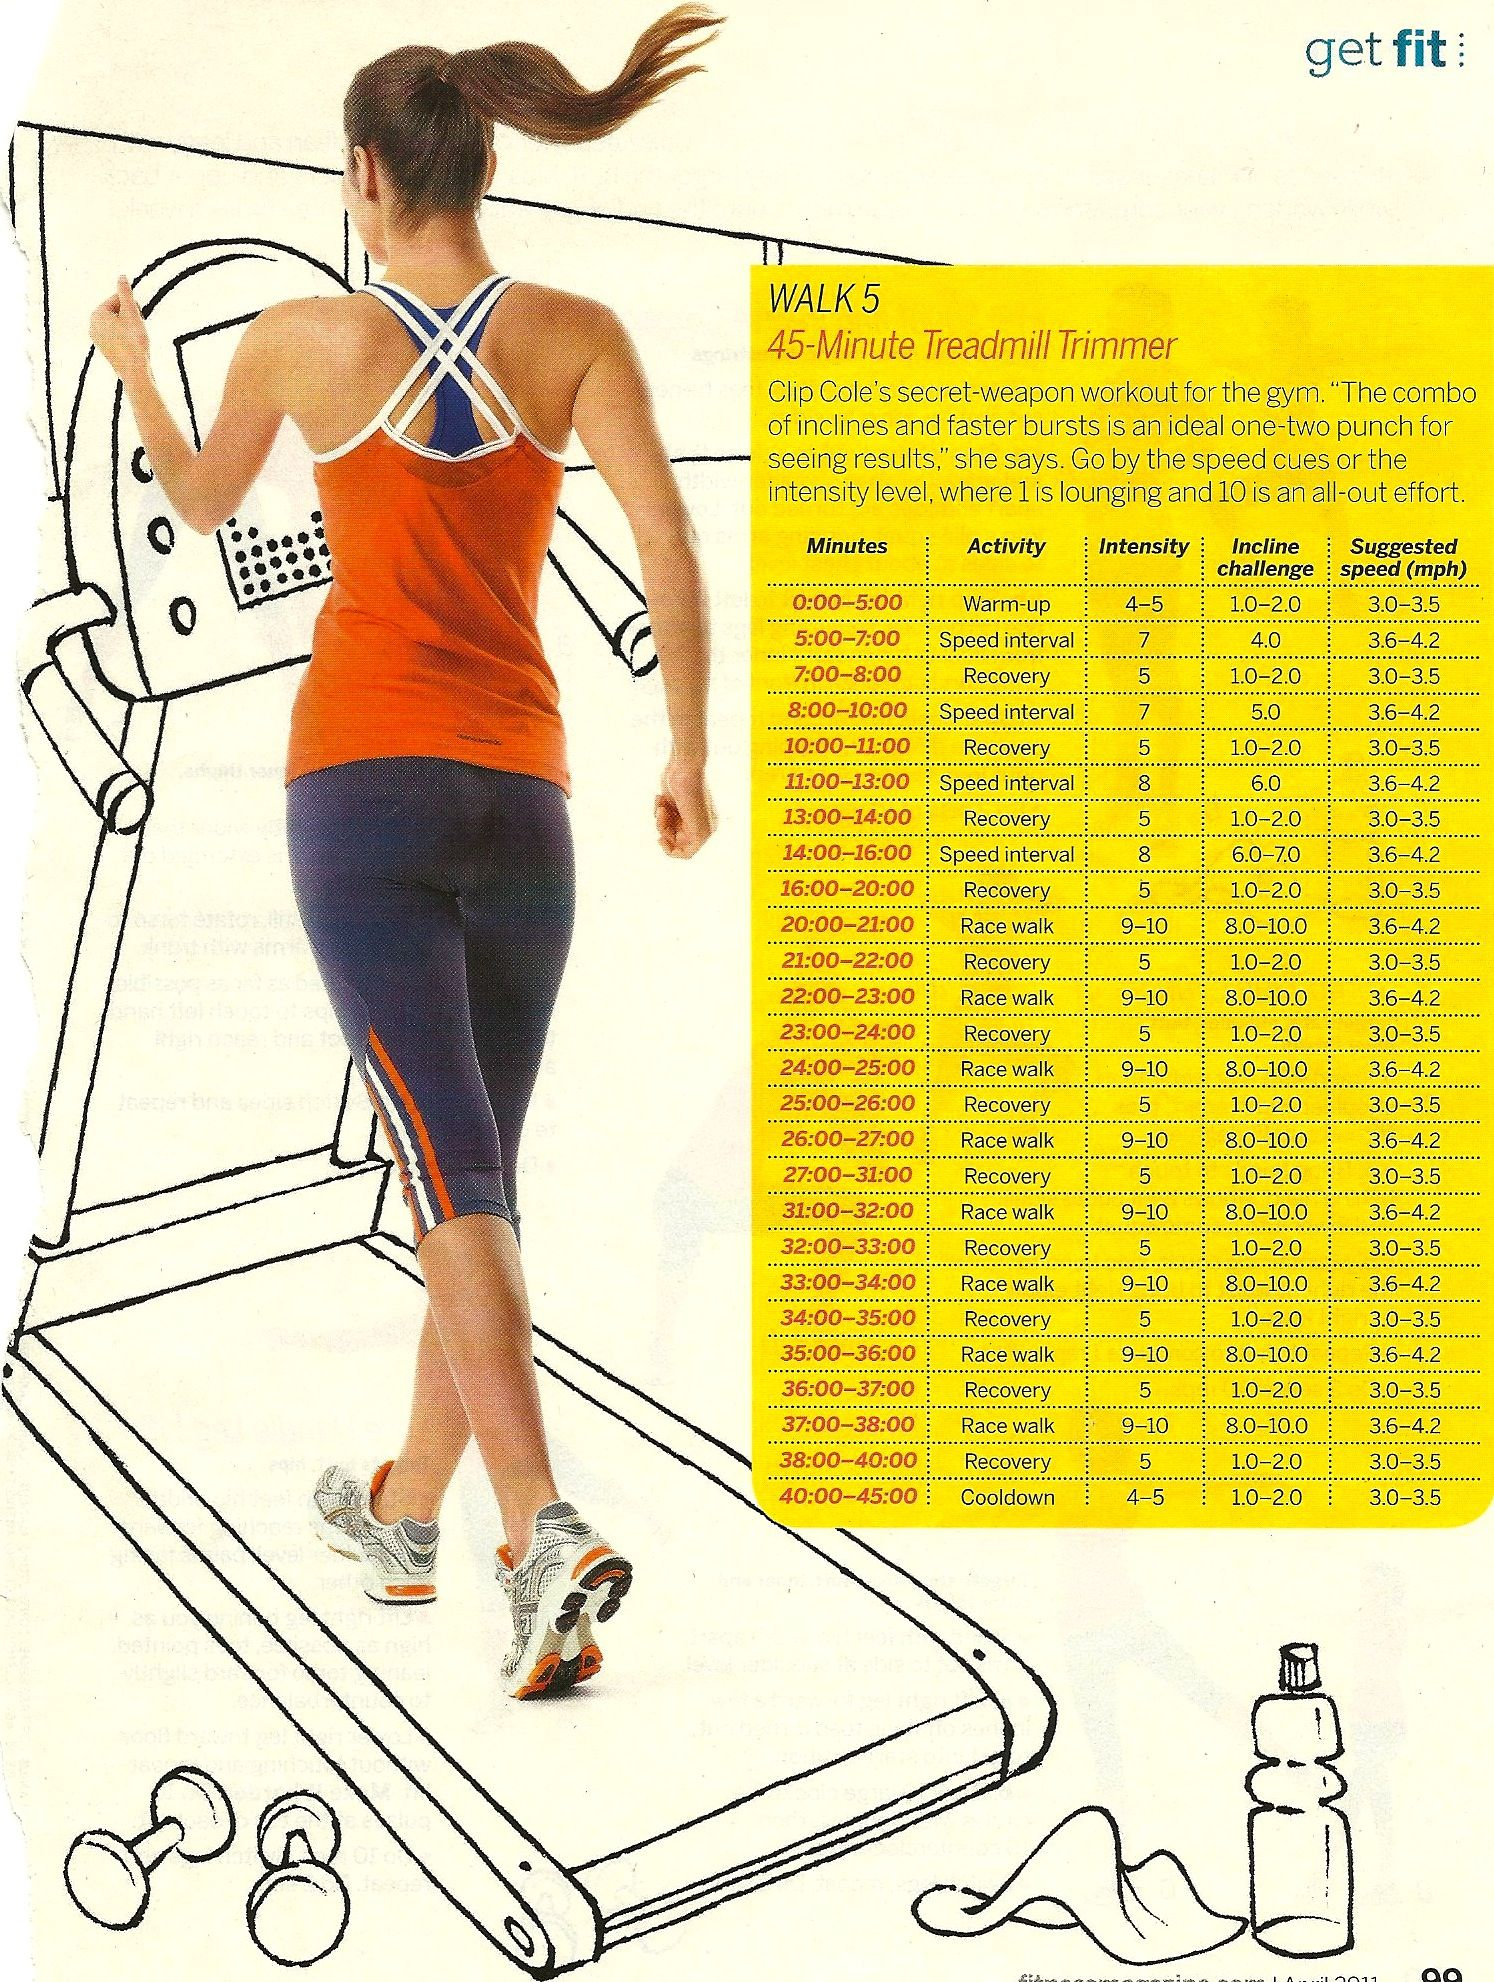 45 minute treadmill trainer